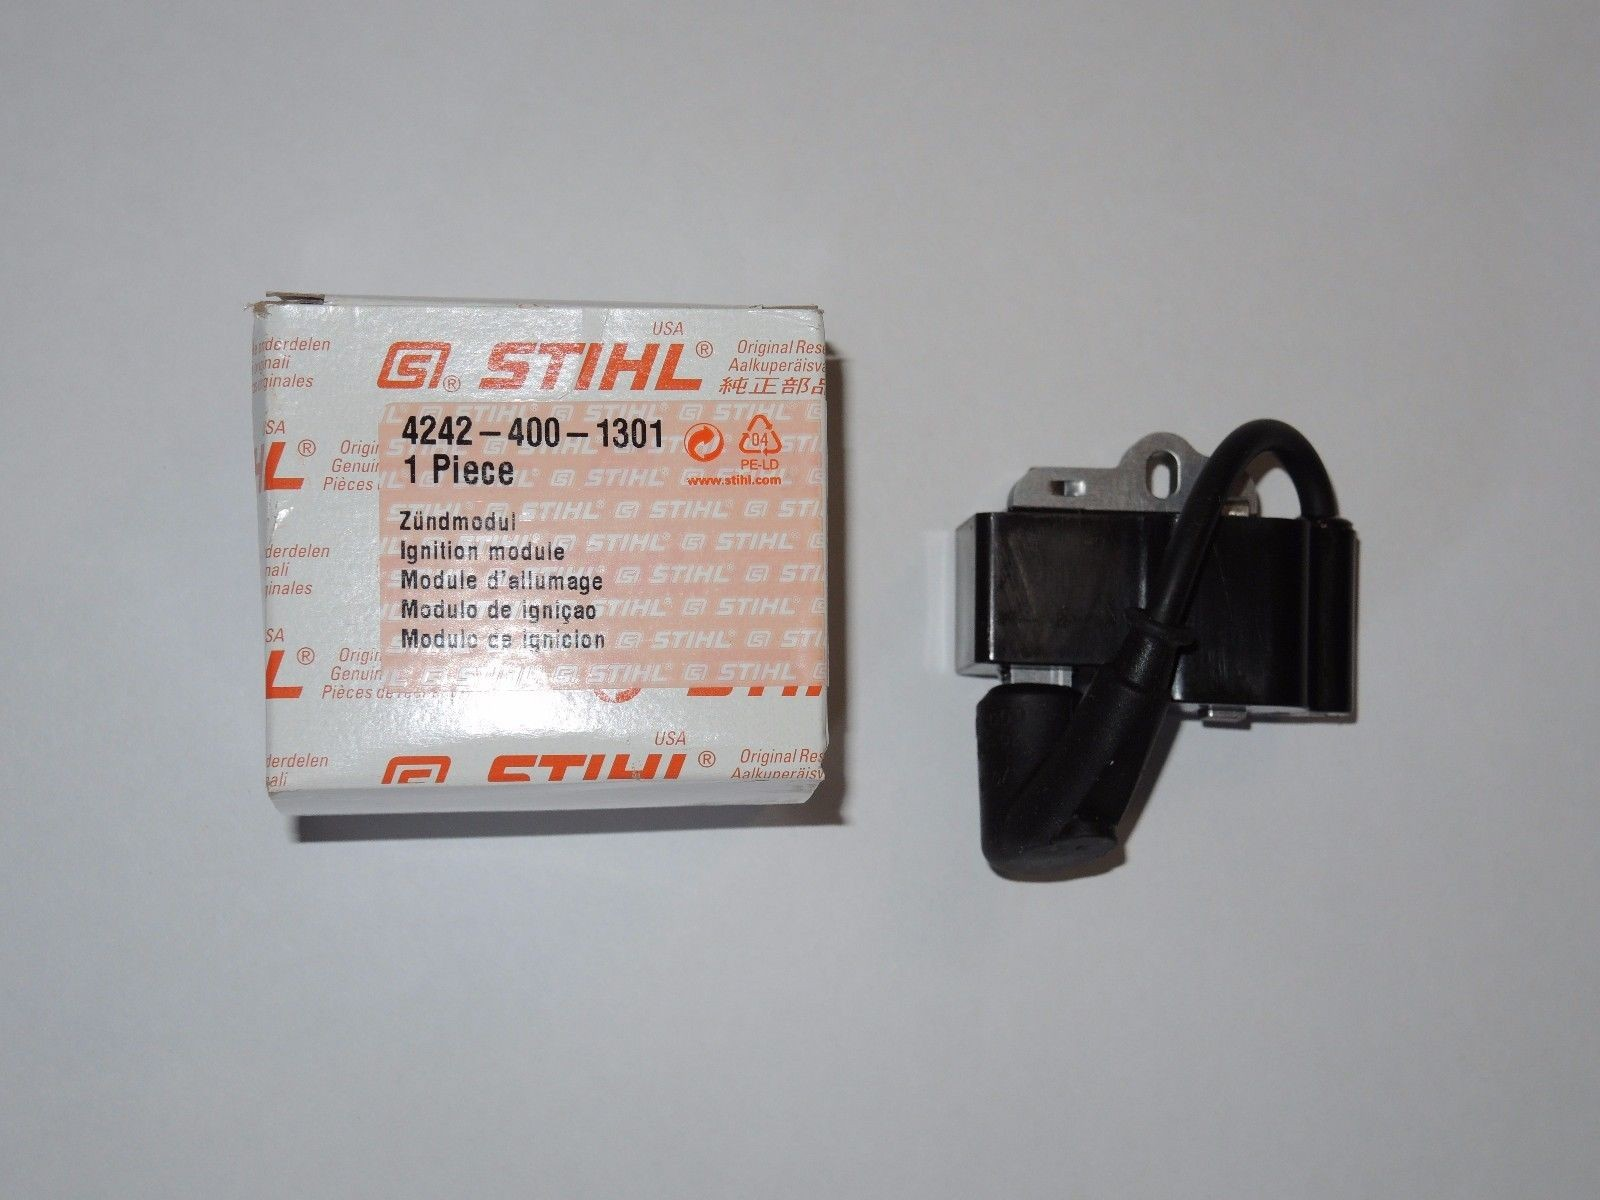 Stihl Ignition Coil / Module for HS 46 56 C Hedge Trimmers - AMEISENGARTEN